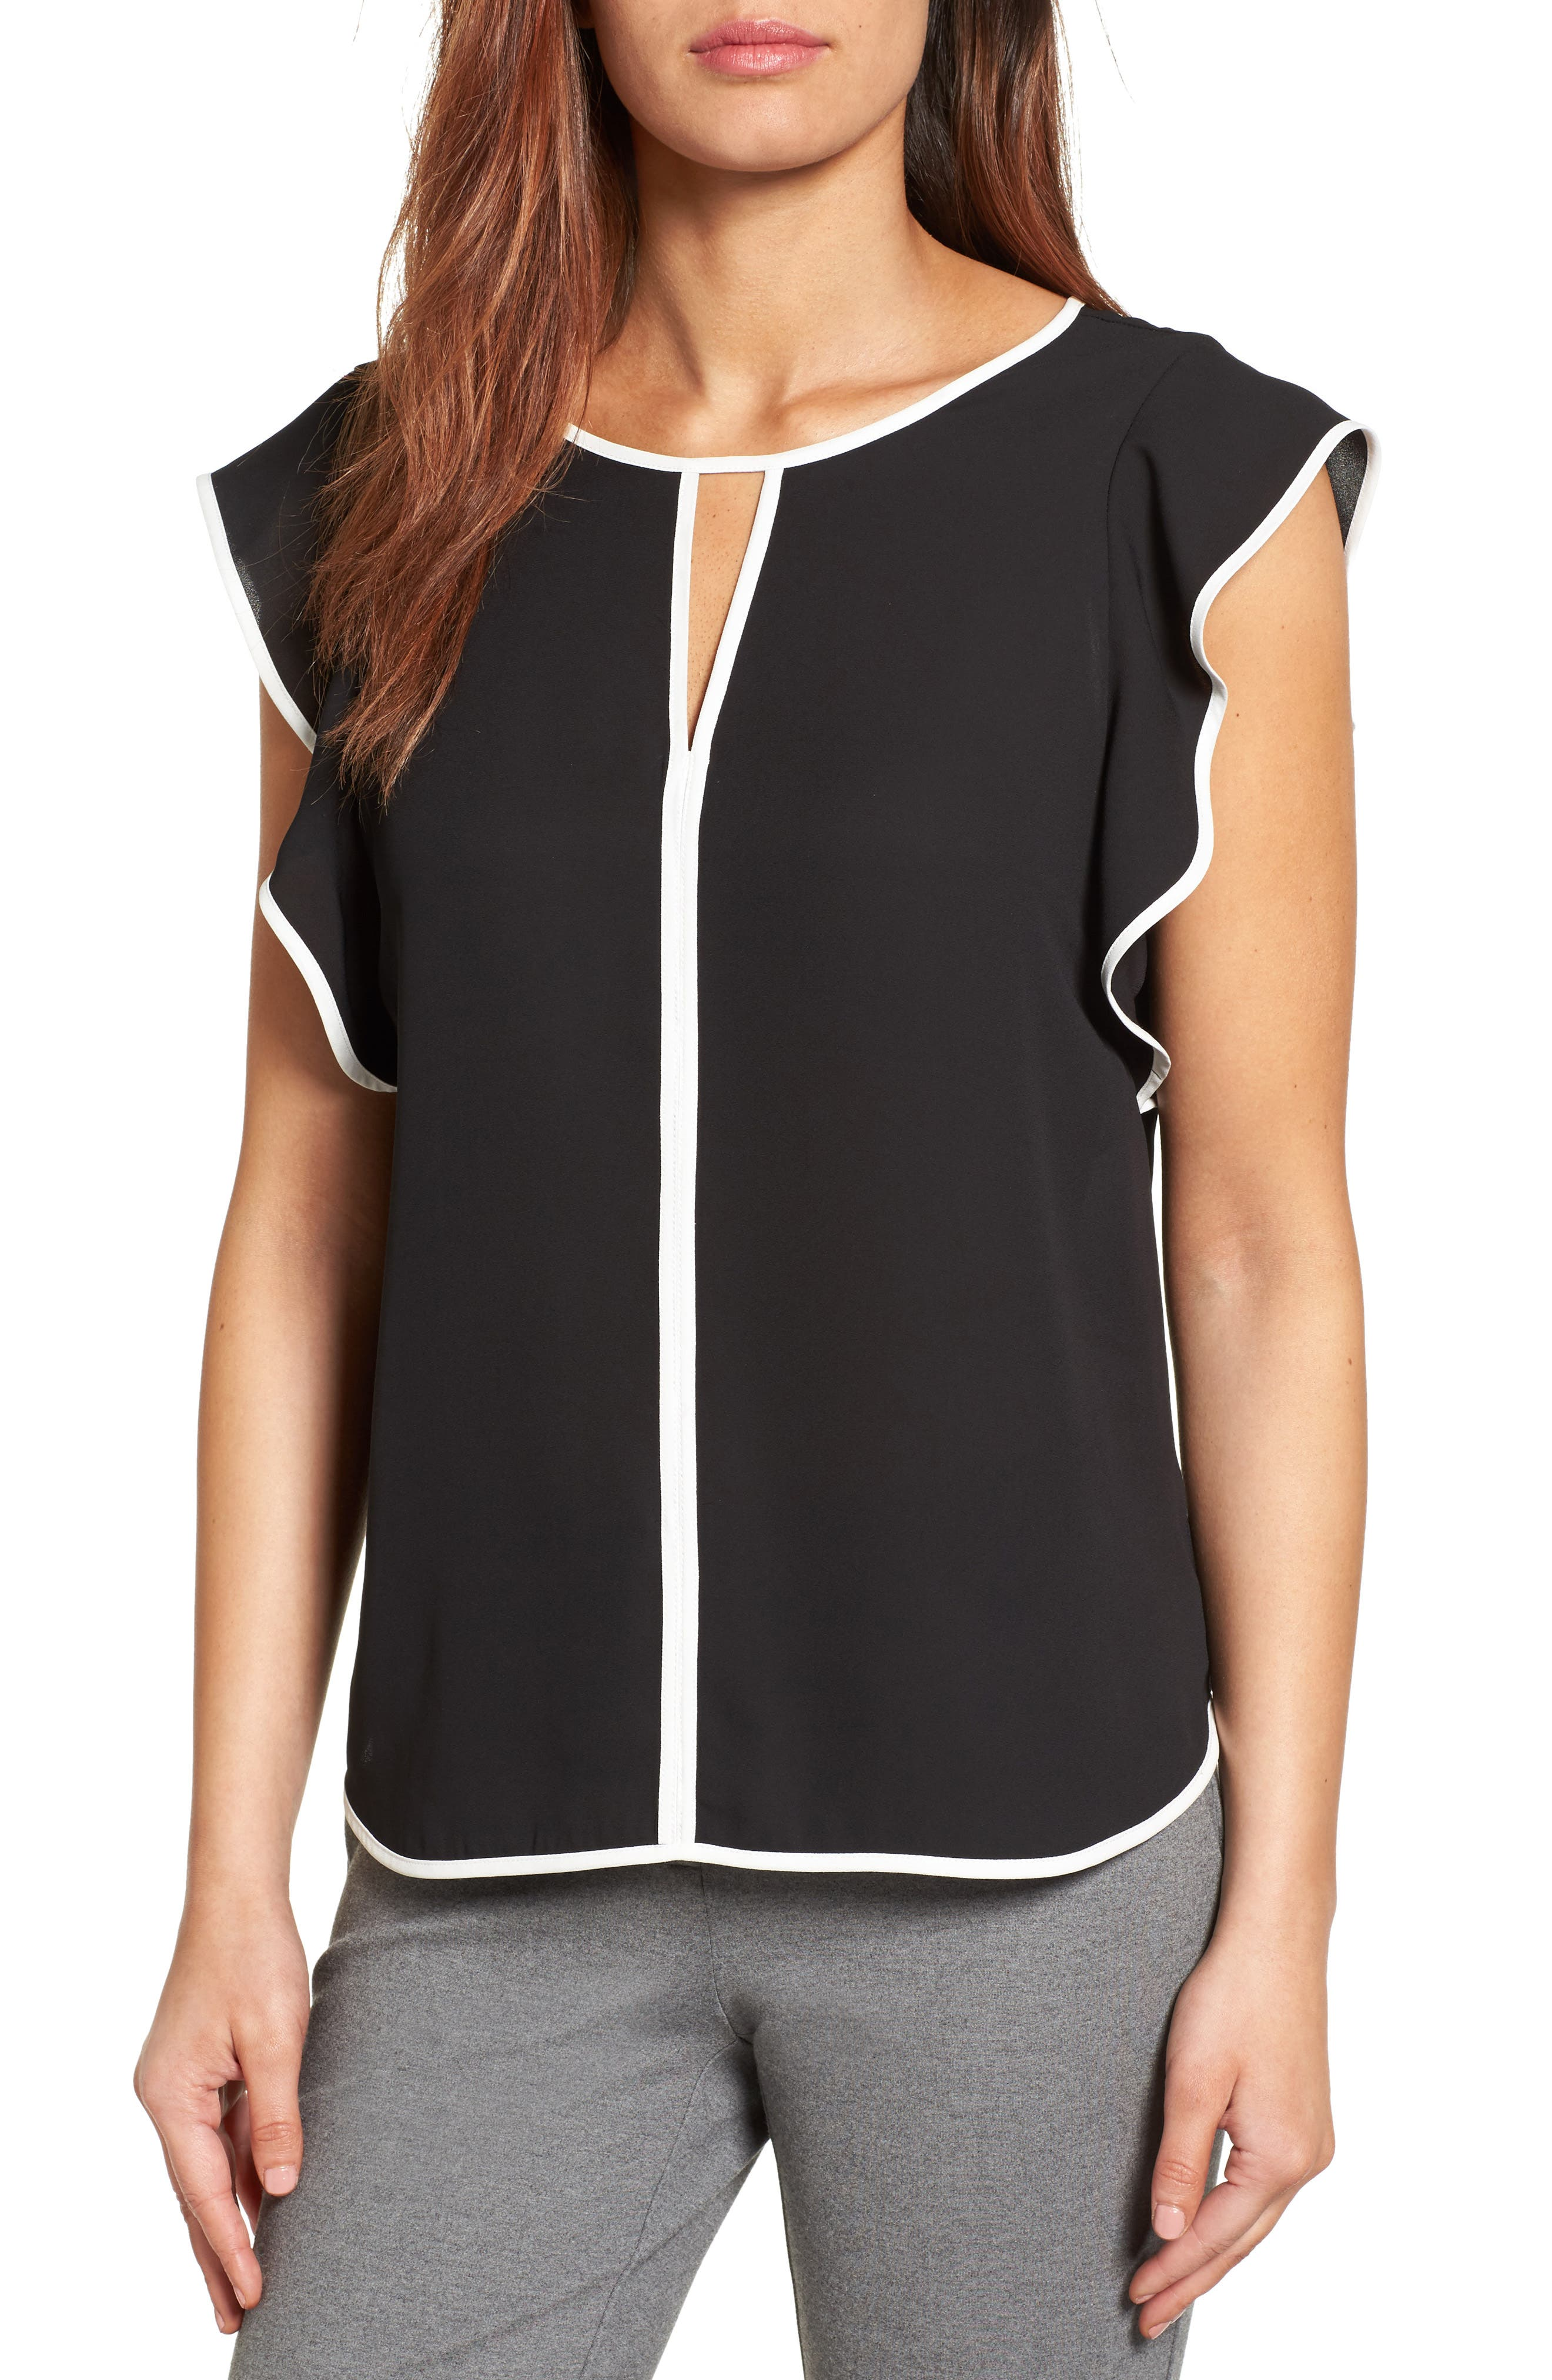 Alternate Image 1 Selected - Vince Camuto Contrast Piped Keyhole Blouse (Regular & Petite)